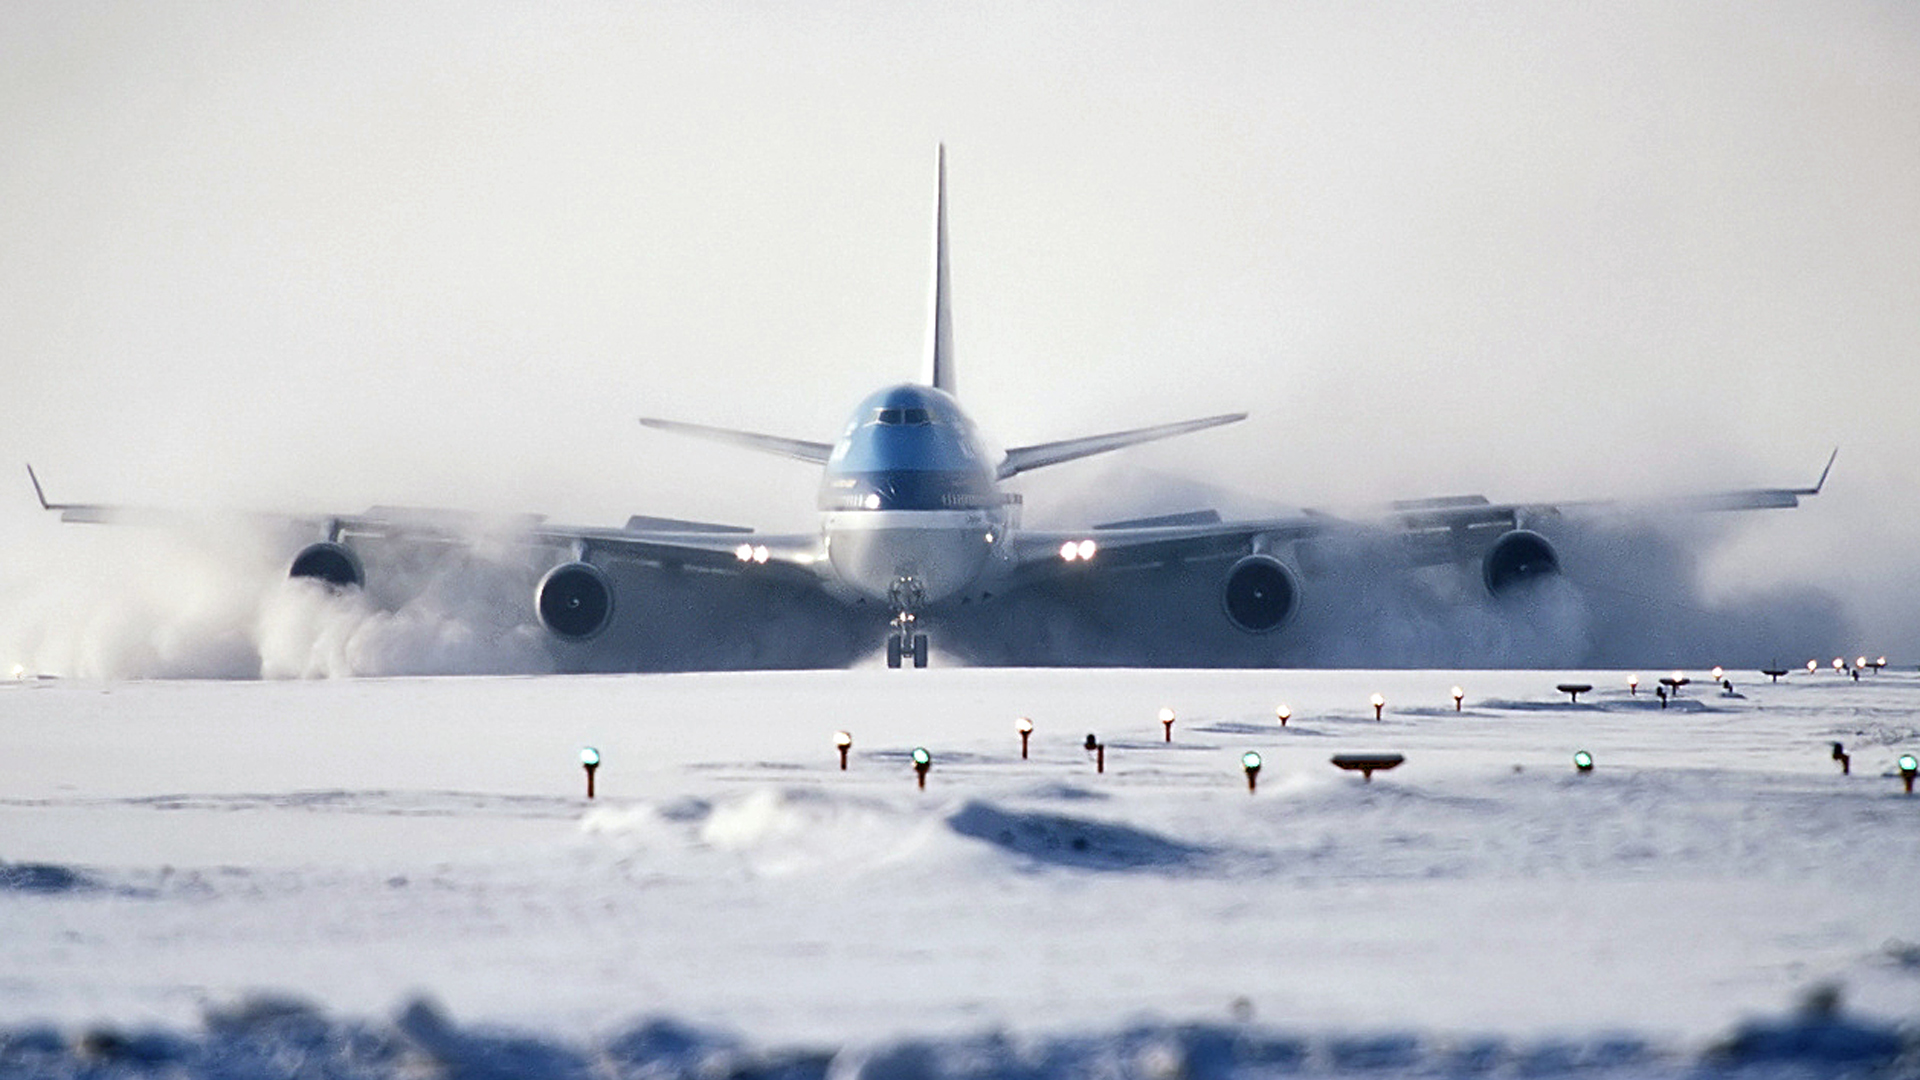 Coming soon: a new global format for runway surface conditions